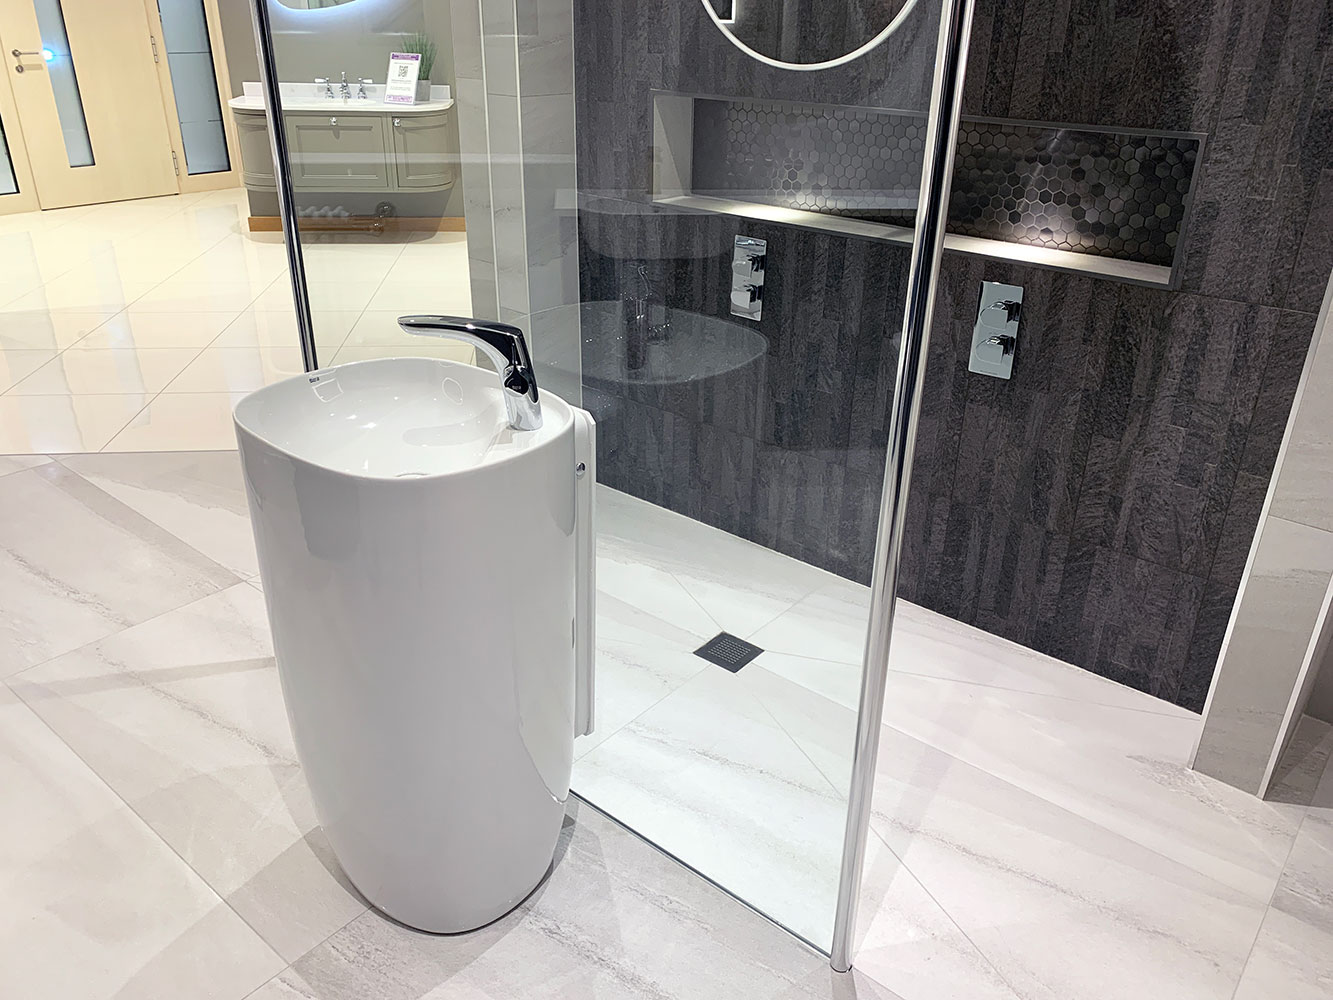 Bathroom Showroom Aberdeen: Bathroom Gallery 6, Photo 3